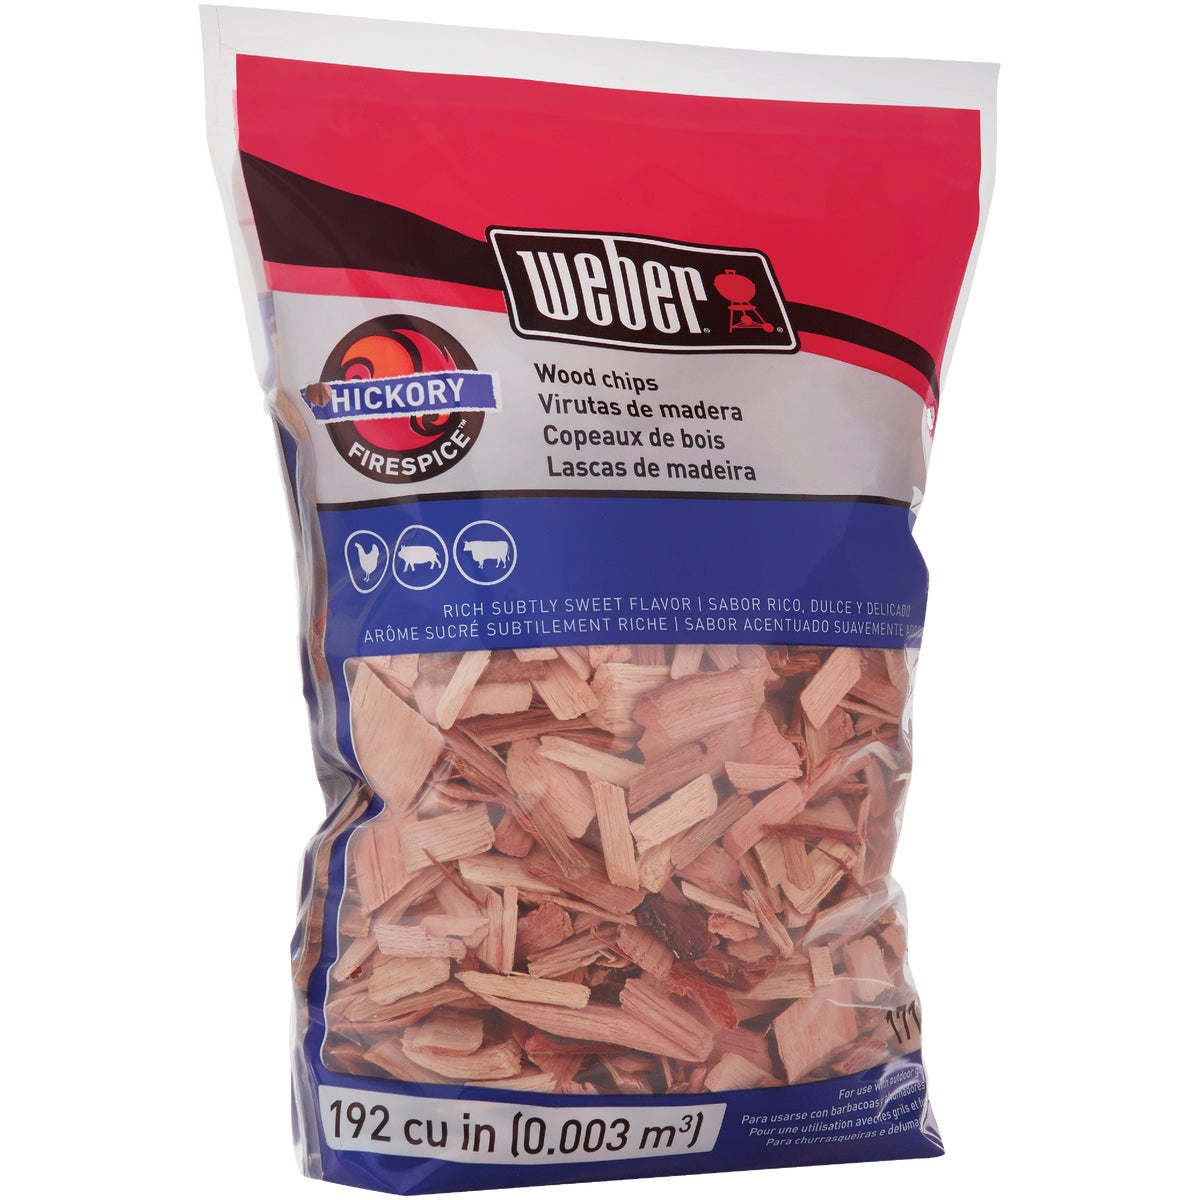 210CI HICKORY CHIPS - 17053 by Weber